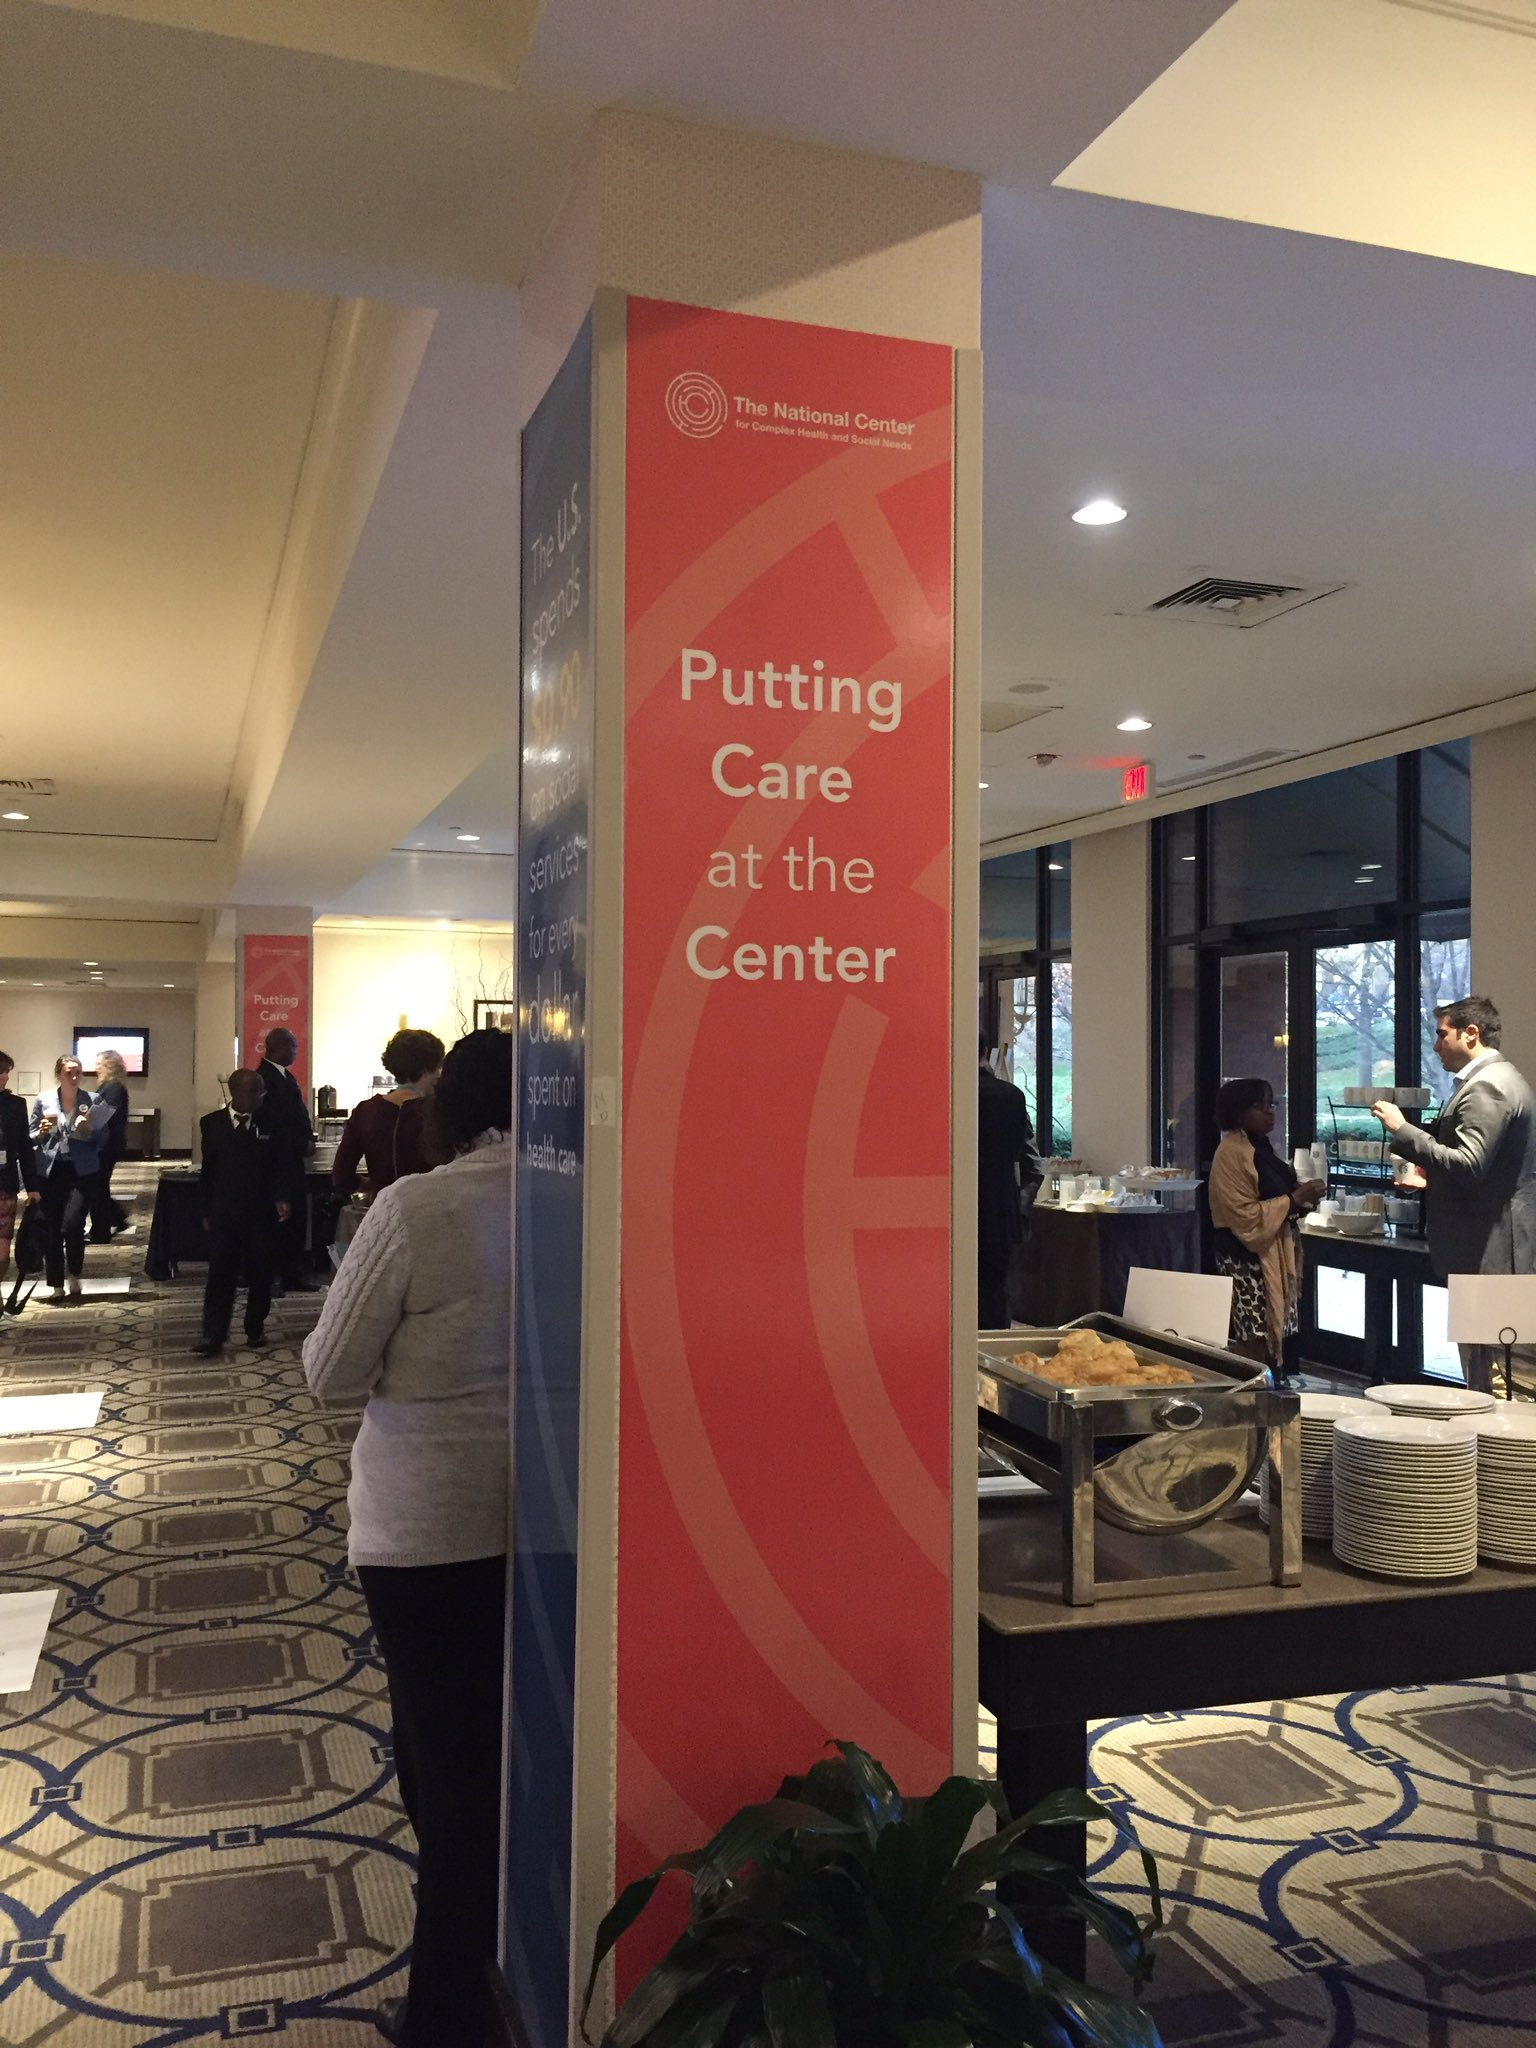 Are you ready to put care at the center? #CenteringCare https://t.co/aWUZ3aKbGu